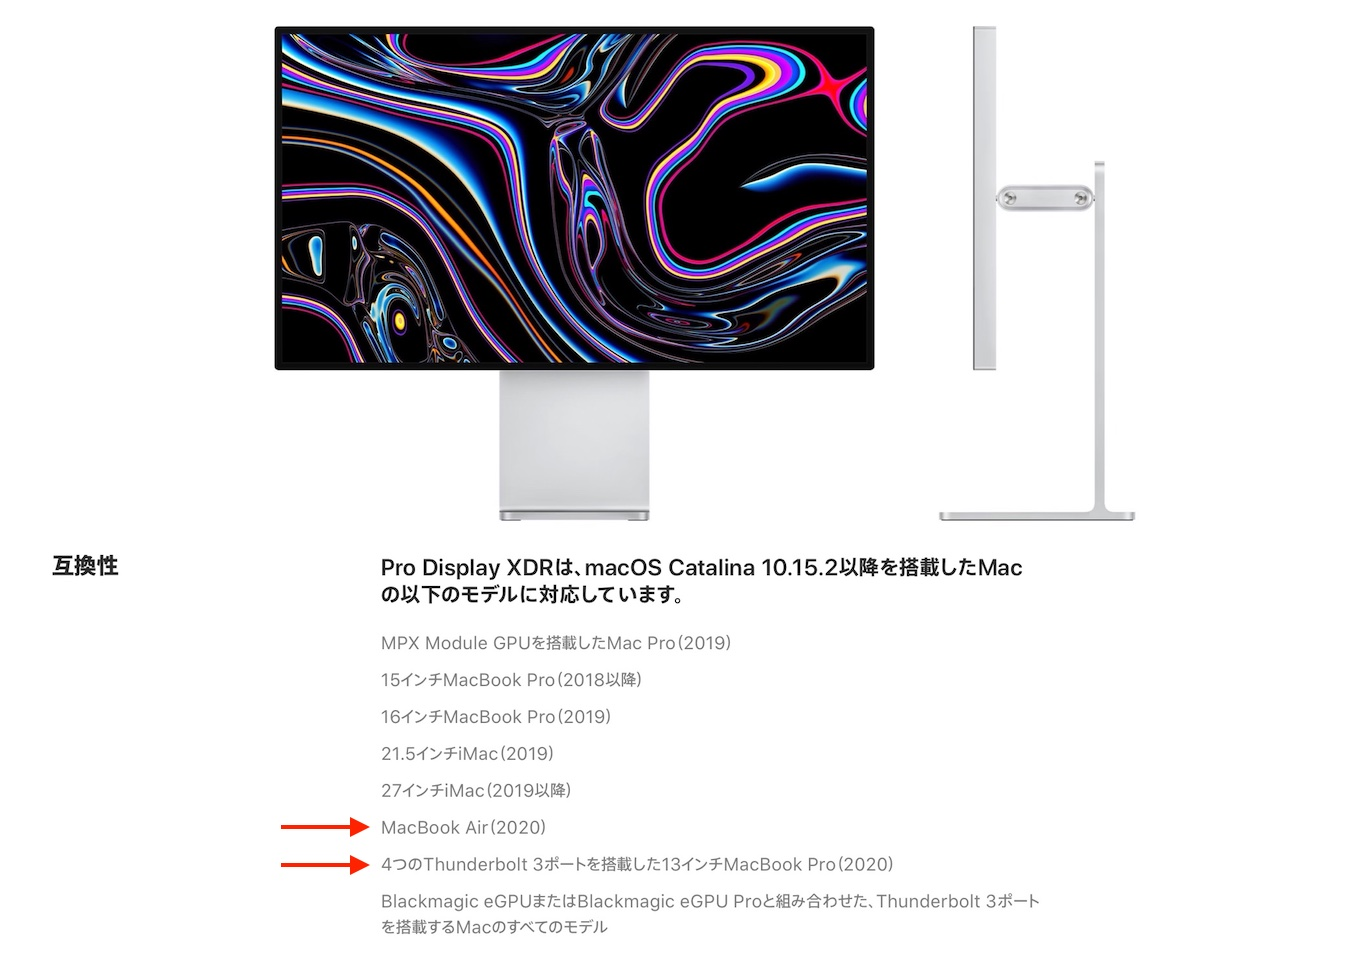 Set up and use Apple Pro Display XDR